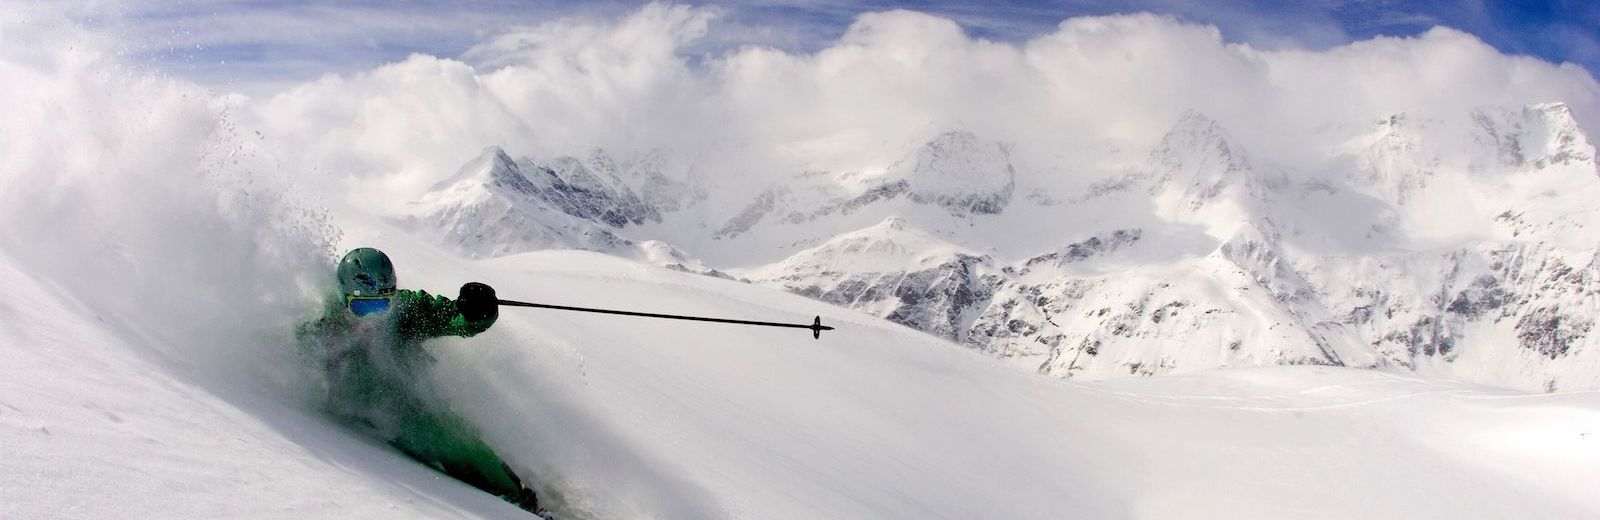 skiing Hohe Tauern, Bad Gastein, the alps in Austria